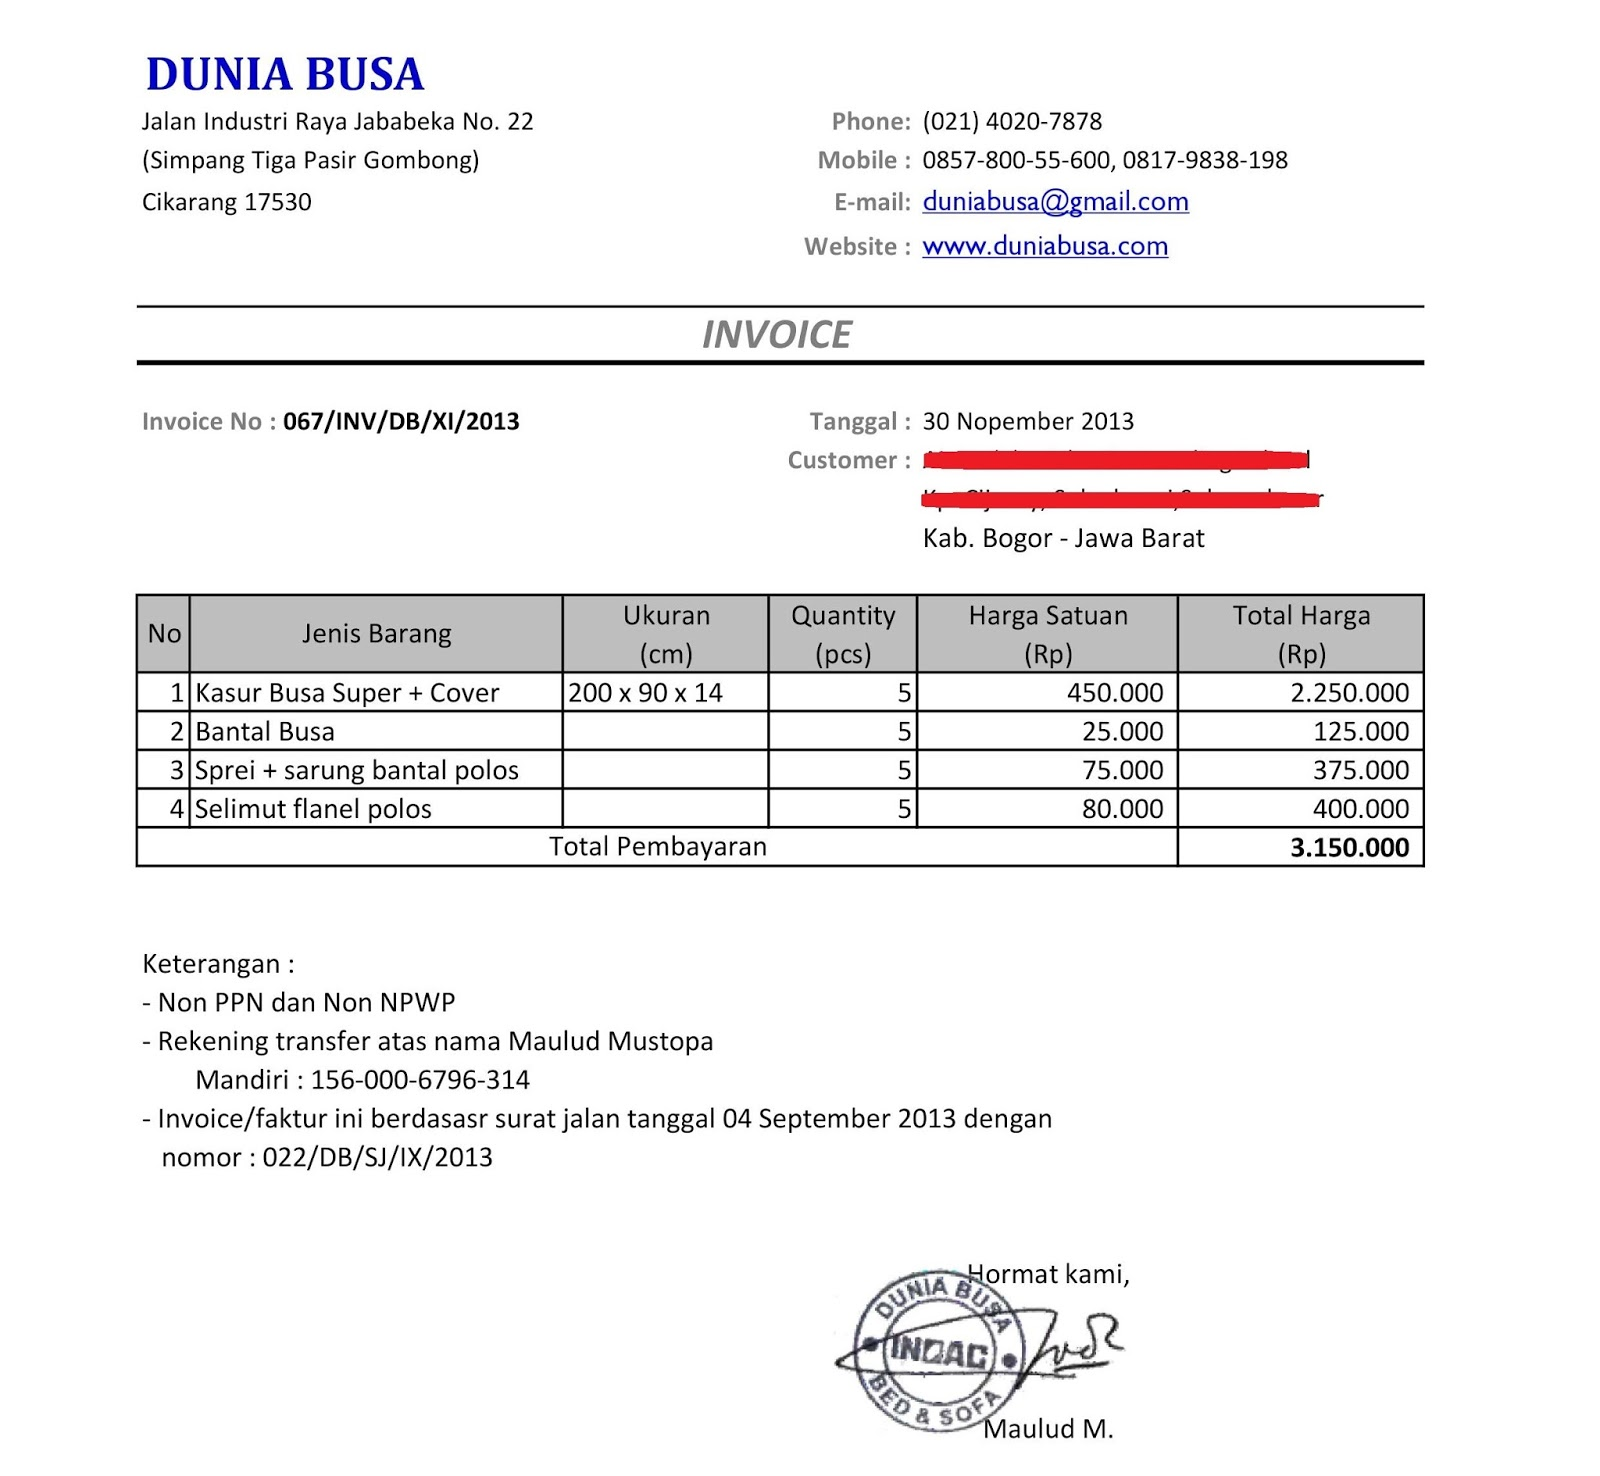 Ultrablogus  Winning Free Invoice Online  Create Invoice Online  Invoice Template  With Interesting Contoh Format Invoice Atau Surat Tagihan  Brankas Arsip  Free Invoice Online With Breathtaking What Is The Difference Between Msrp And Invoice Also Word  Invoice Template In Addition Invoice Tracking System And Definition Of Invoice Price As Well As Custom Made Invoices Additionally Quicken Invoice Templates From Sklepco With Ultrablogus  Interesting Free Invoice Online  Create Invoice Online  Invoice Template  With Breathtaking Contoh Format Invoice Atau Surat Tagihan  Brankas Arsip  Free Invoice Online And Winning What Is The Difference Between Msrp And Invoice Also Word  Invoice Template In Addition Invoice Tracking System From Sklepco